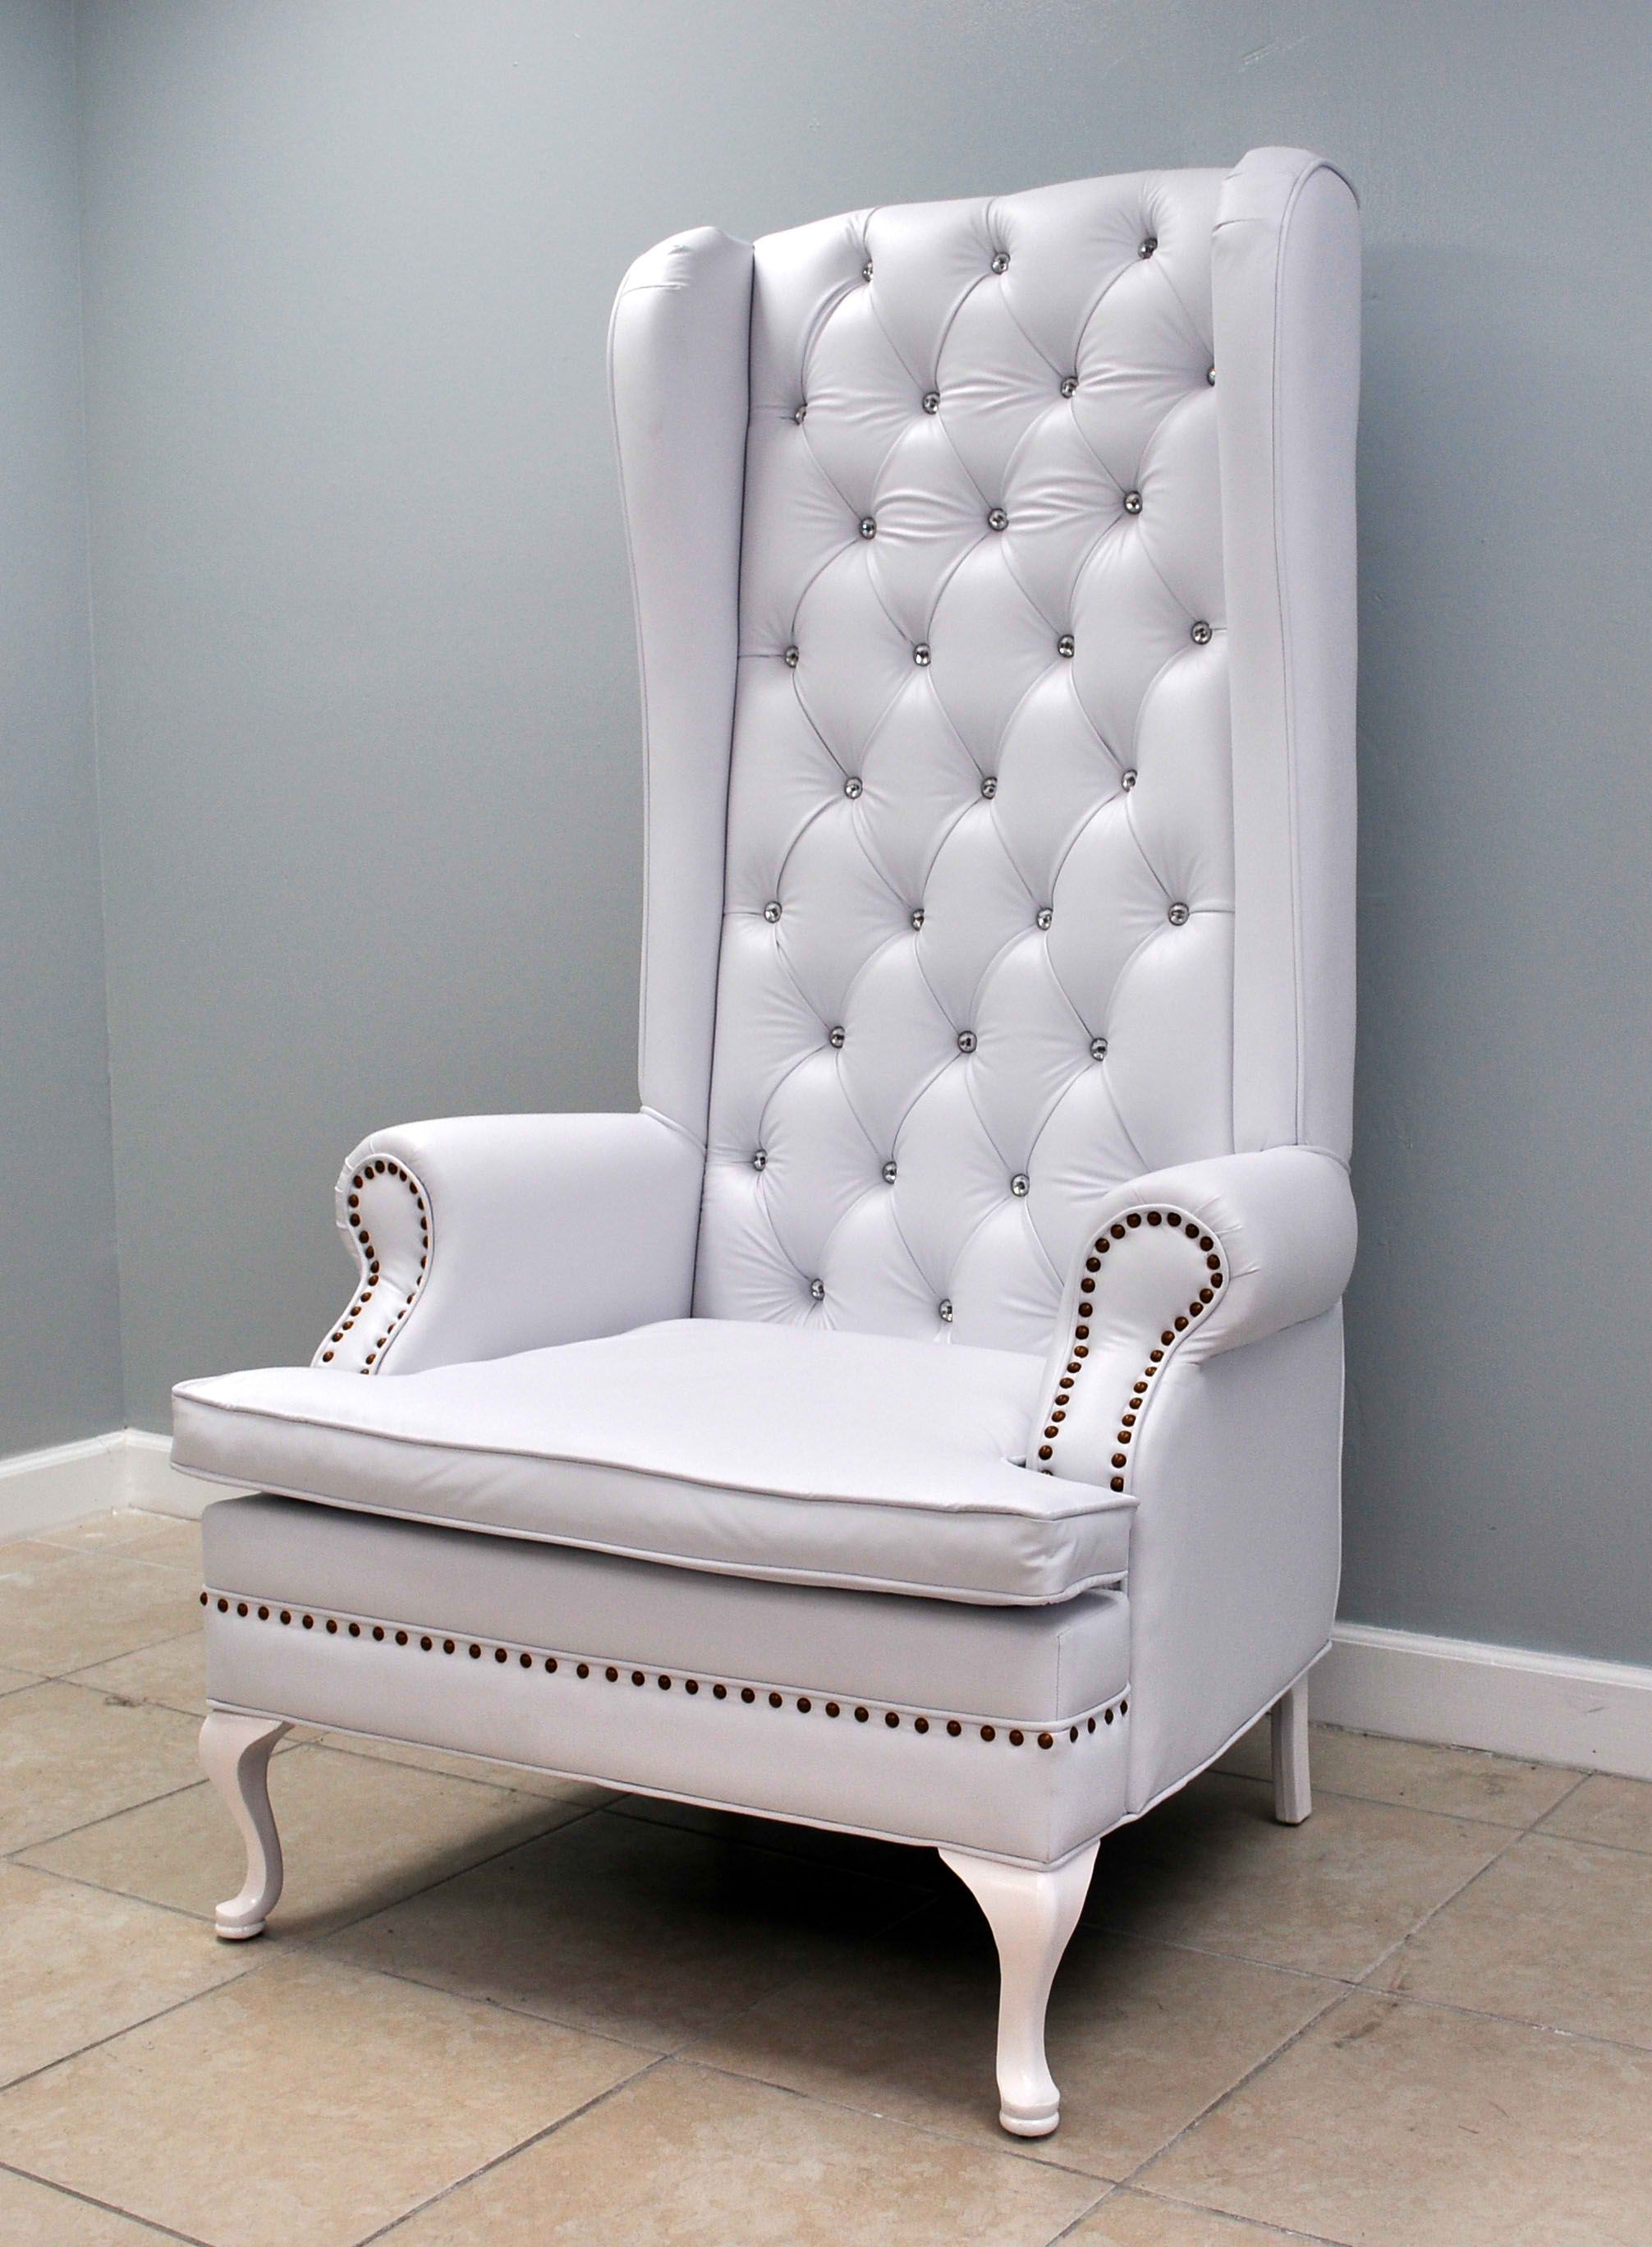 white throne chair Interior Design Pinterest